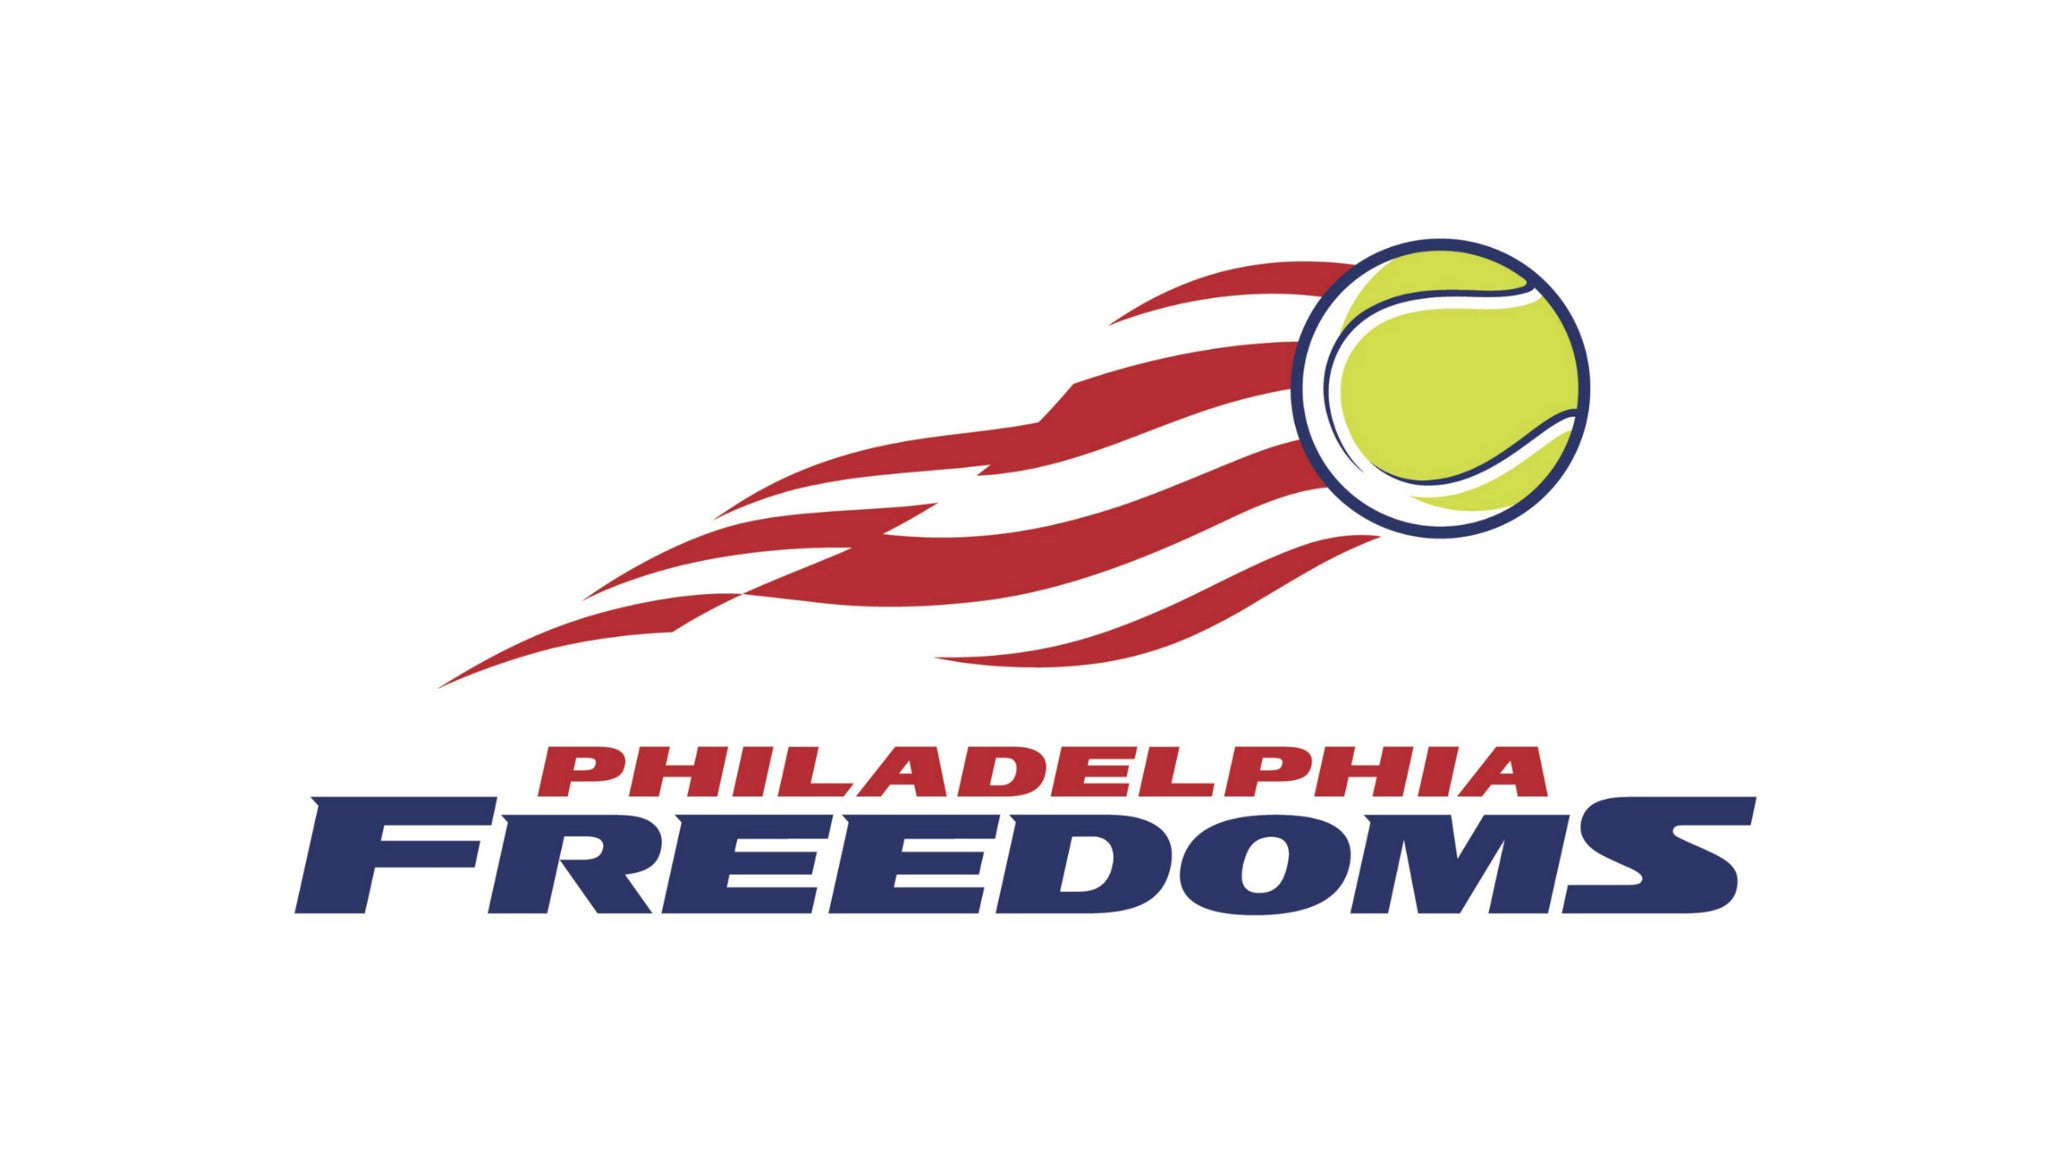 Philadelphia Freedoms vs. Orange County Breakers